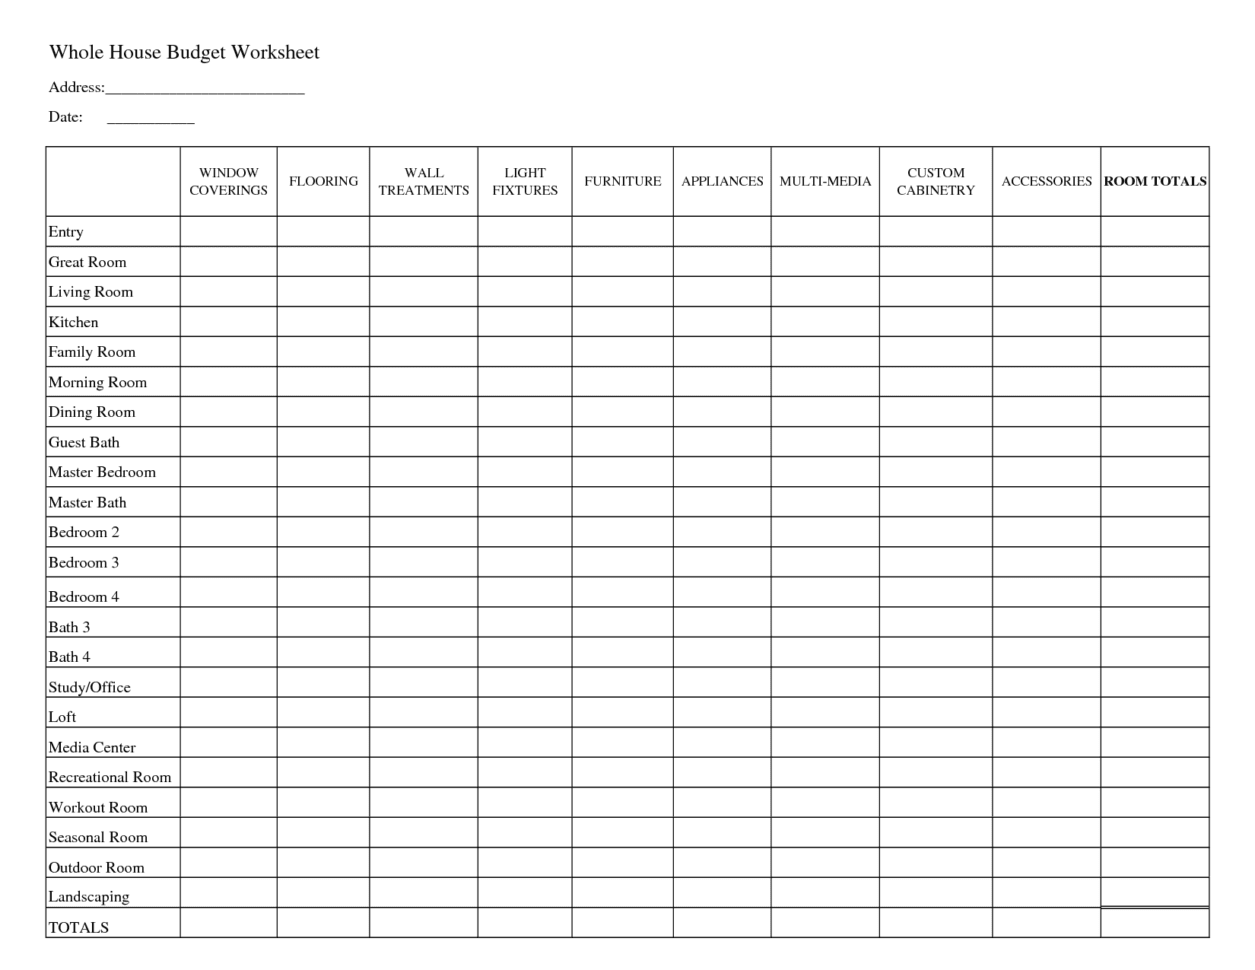 template budget spreadsheet budget spreadsheet spreadsheet templates for busines free printable. Black Bedroom Furniture Sets. Home Design Ideas